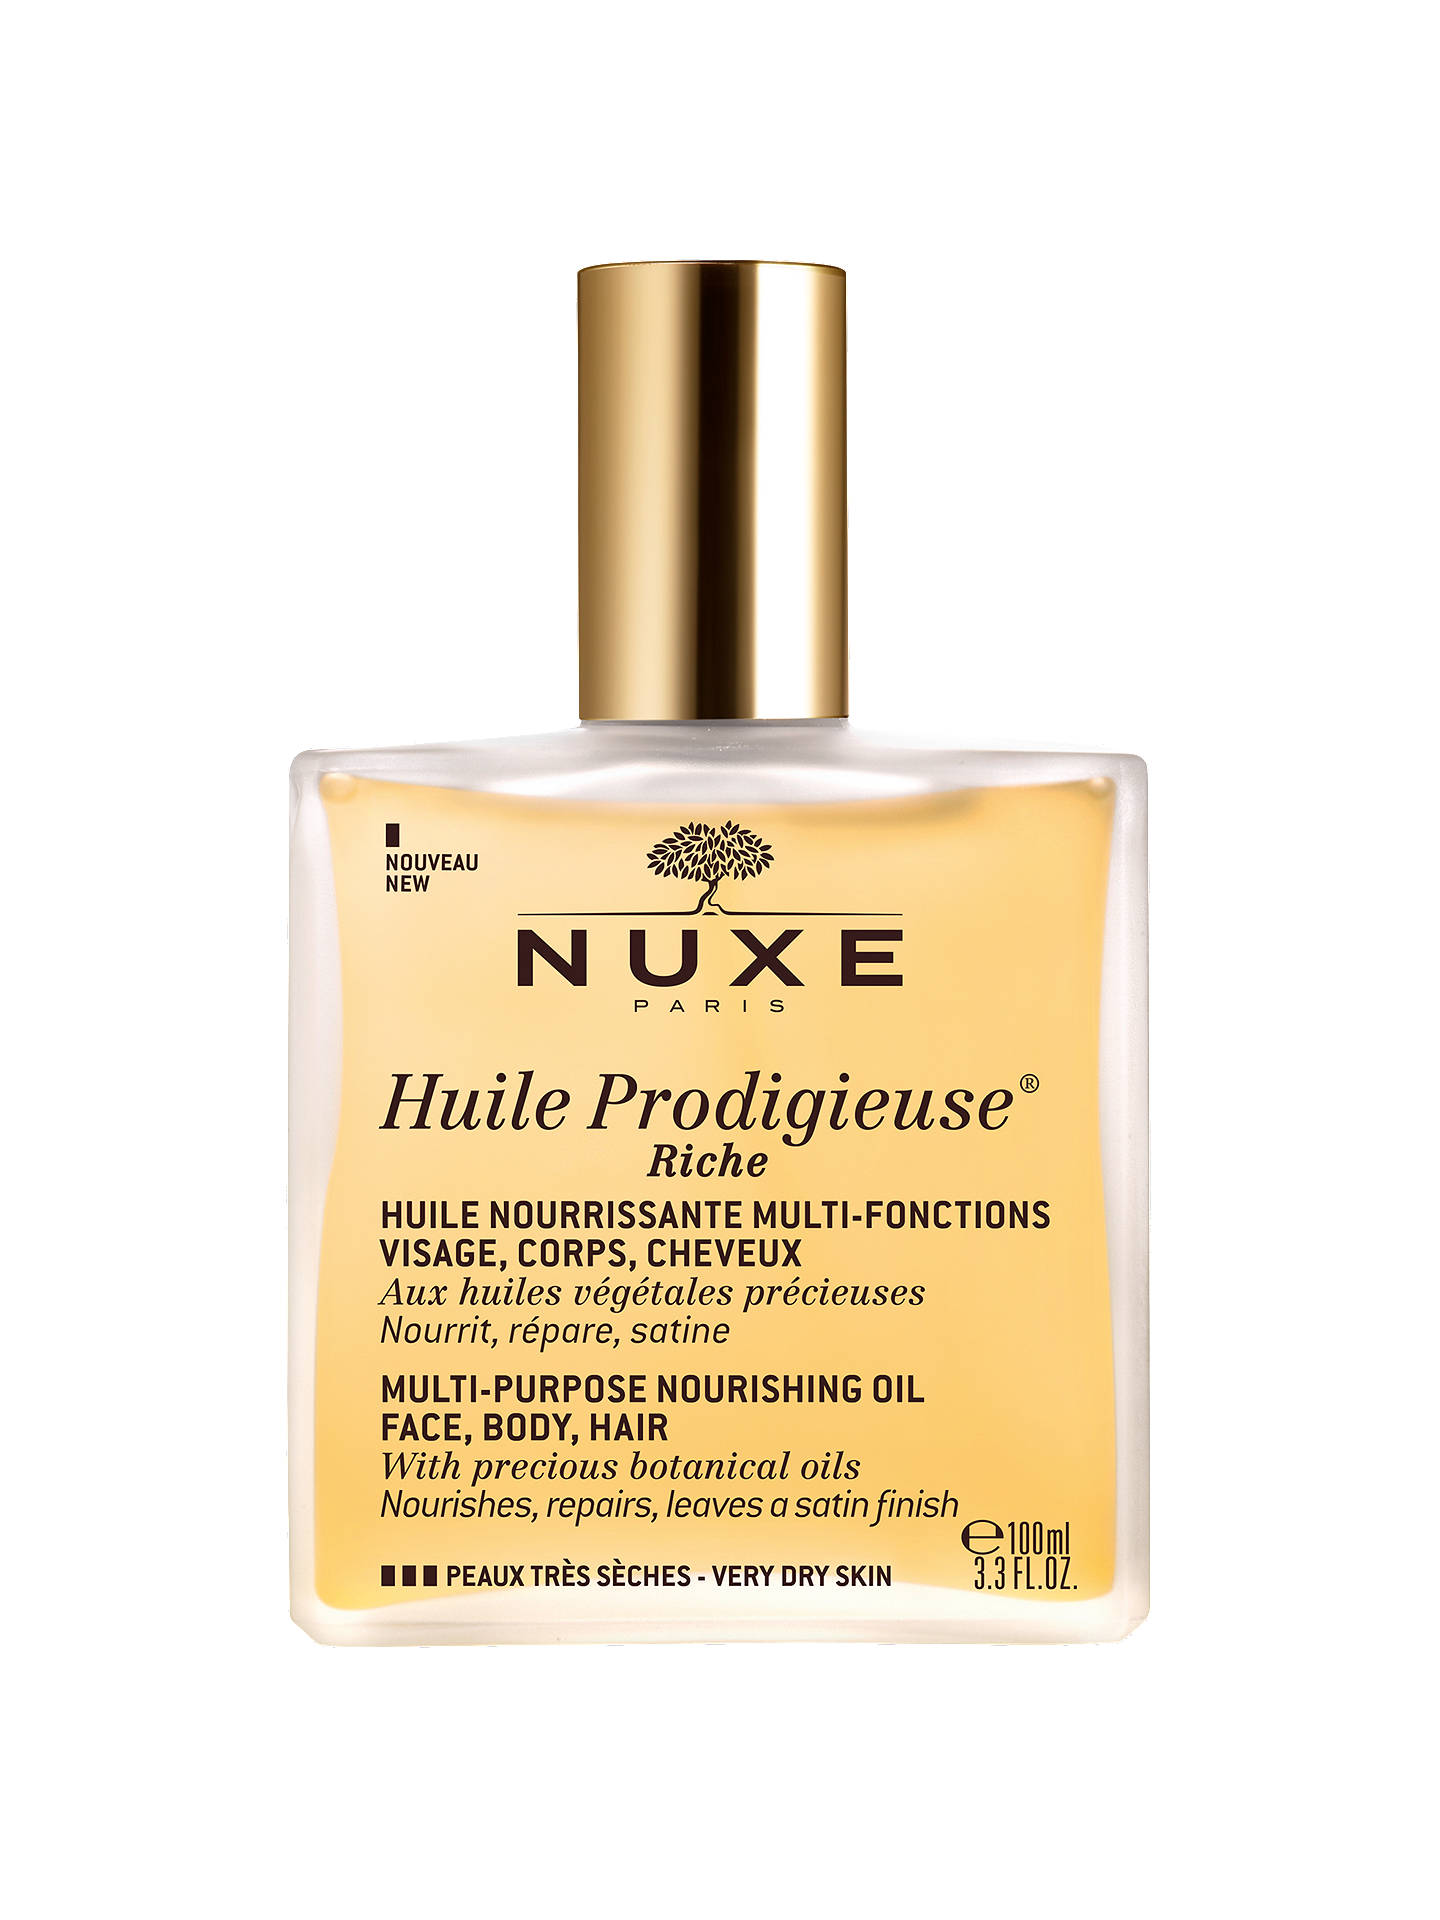 Nuxe Huile Prodigieuse Riche Multi Purpose Nourishing Oil Spray Beauty Barn Baby All Over Buynuxe Bottle 100ml Online At